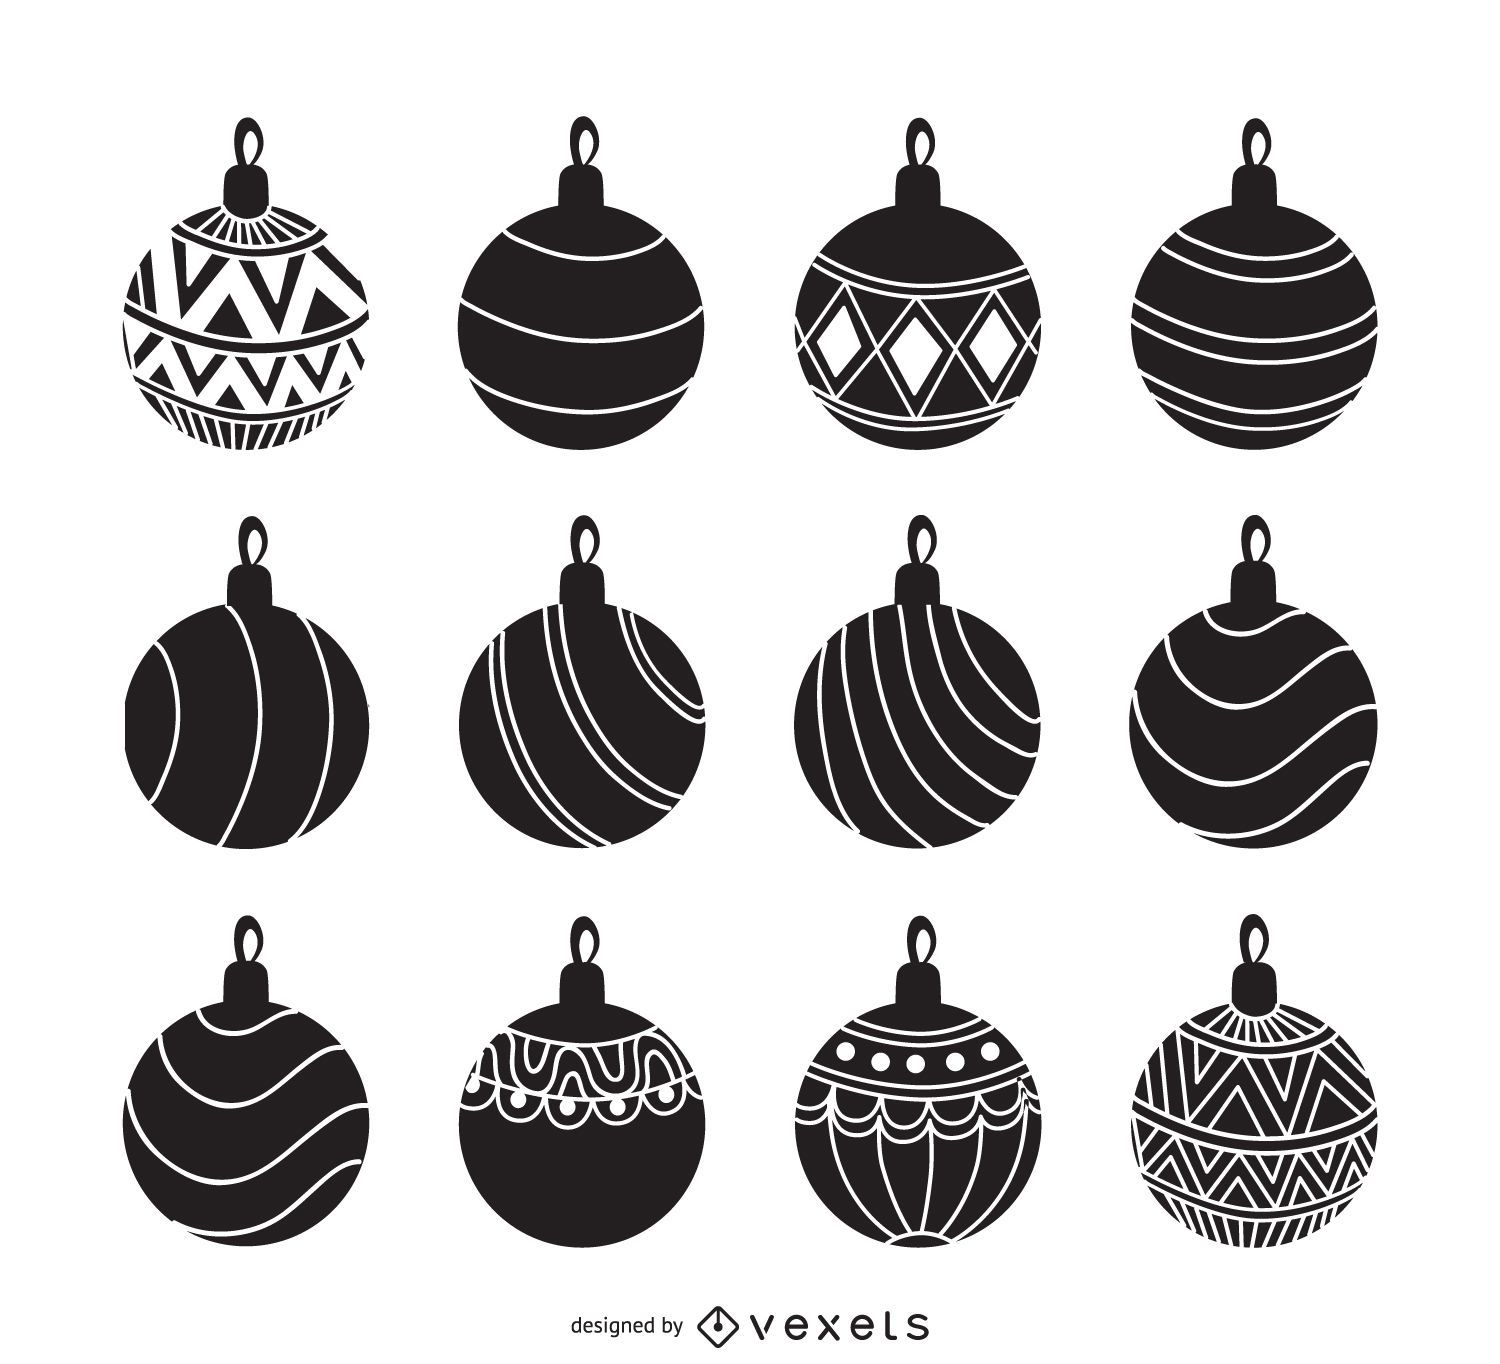 Christmas ornament black and white - Christmas Ornament Silhouette Set Download Large Image 1760x1600px